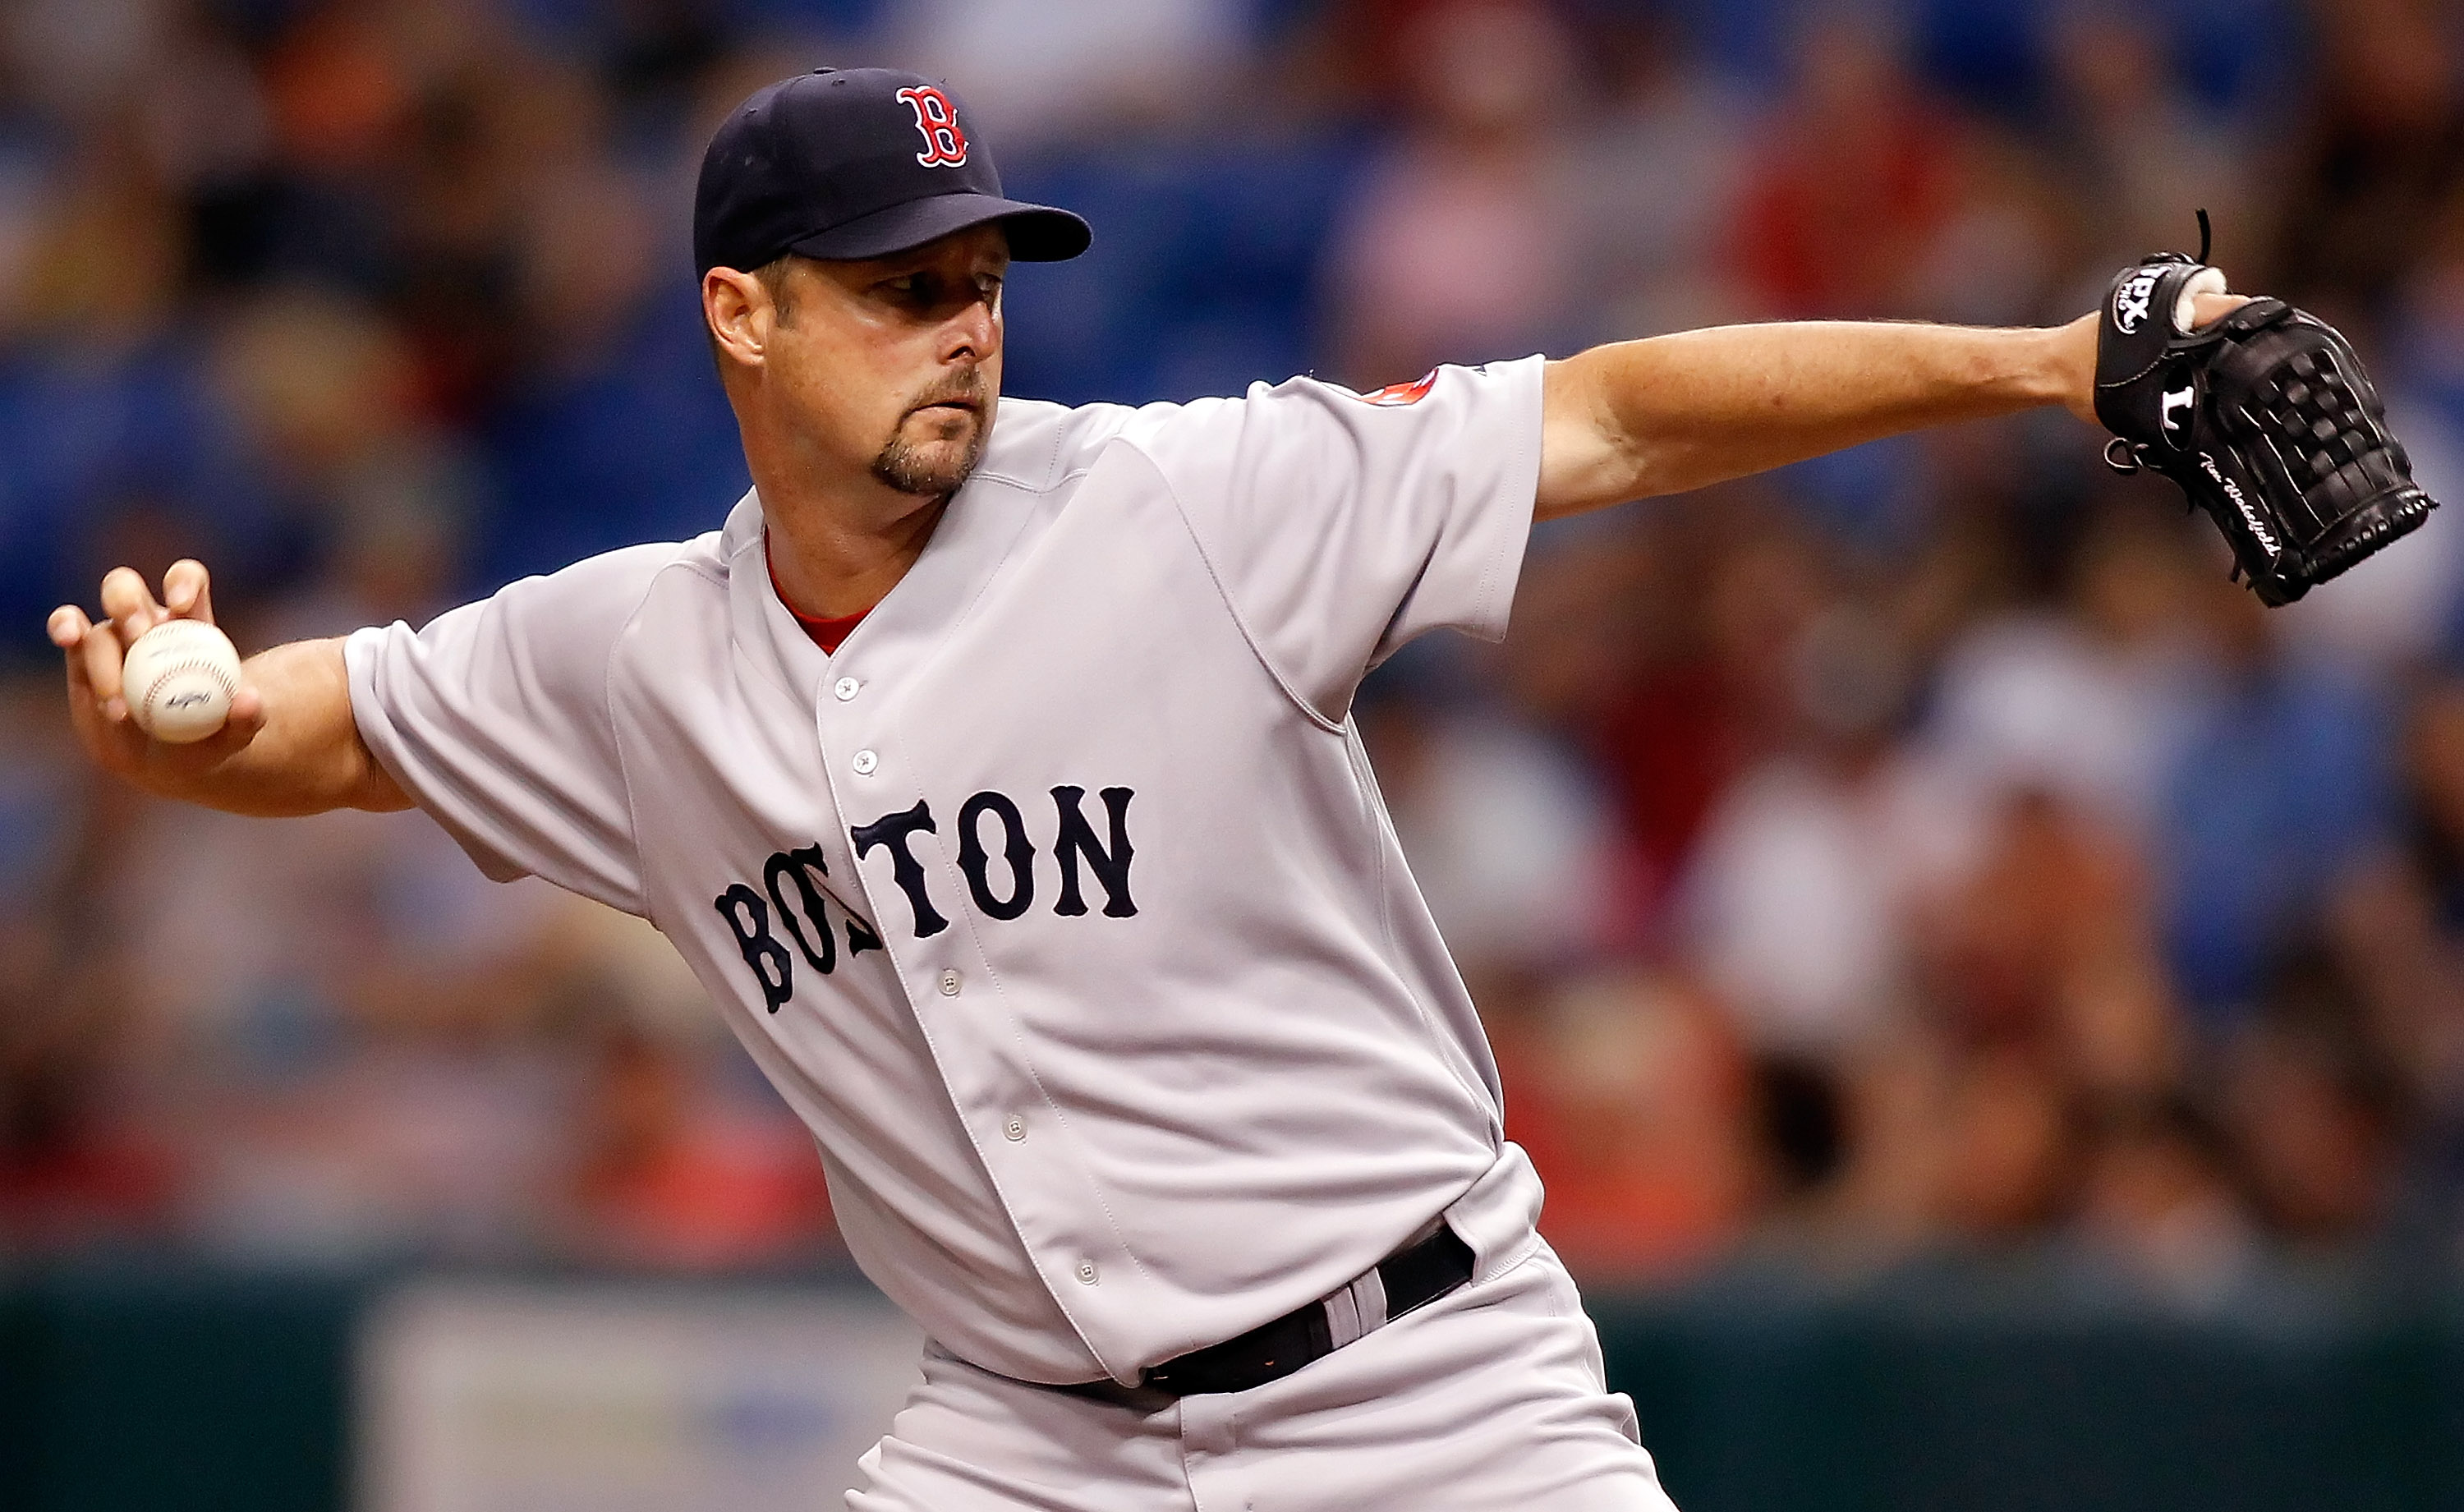 ST. PETERSBURG - JULY 07:  Pitcher Tim Wakefield #49 of the Boston Red Sox pitches against the Tampa Bay Rays during the game at Tropicana Field on July 7, 2010 in St. Petersburg, Florida.  (Photo by J. Meric/Getty Images)